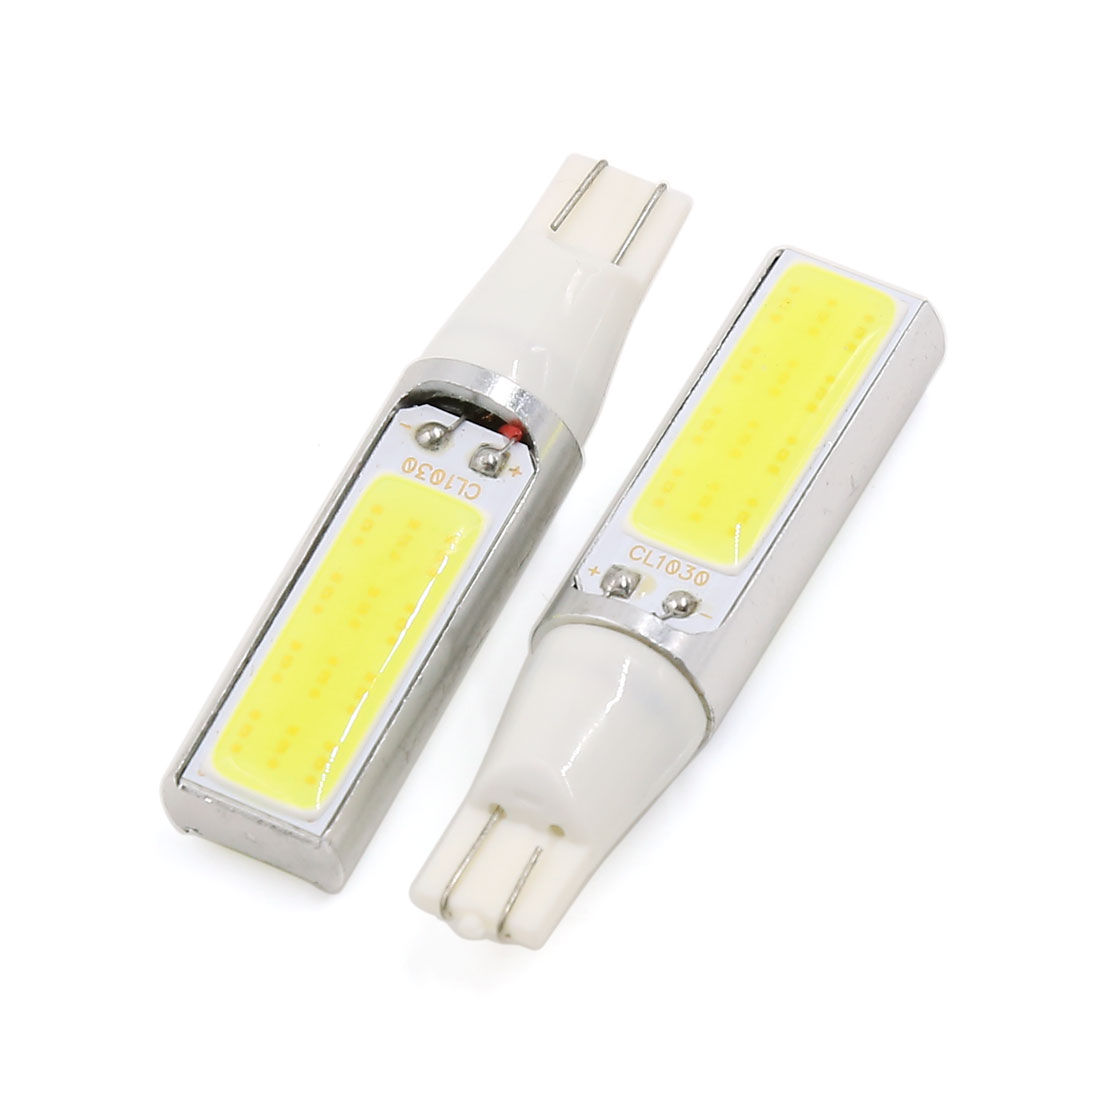 2 Pcs 15W T10 194 W5W COB 2-LED White Instrument Panel Light Wedge Lamp Interior